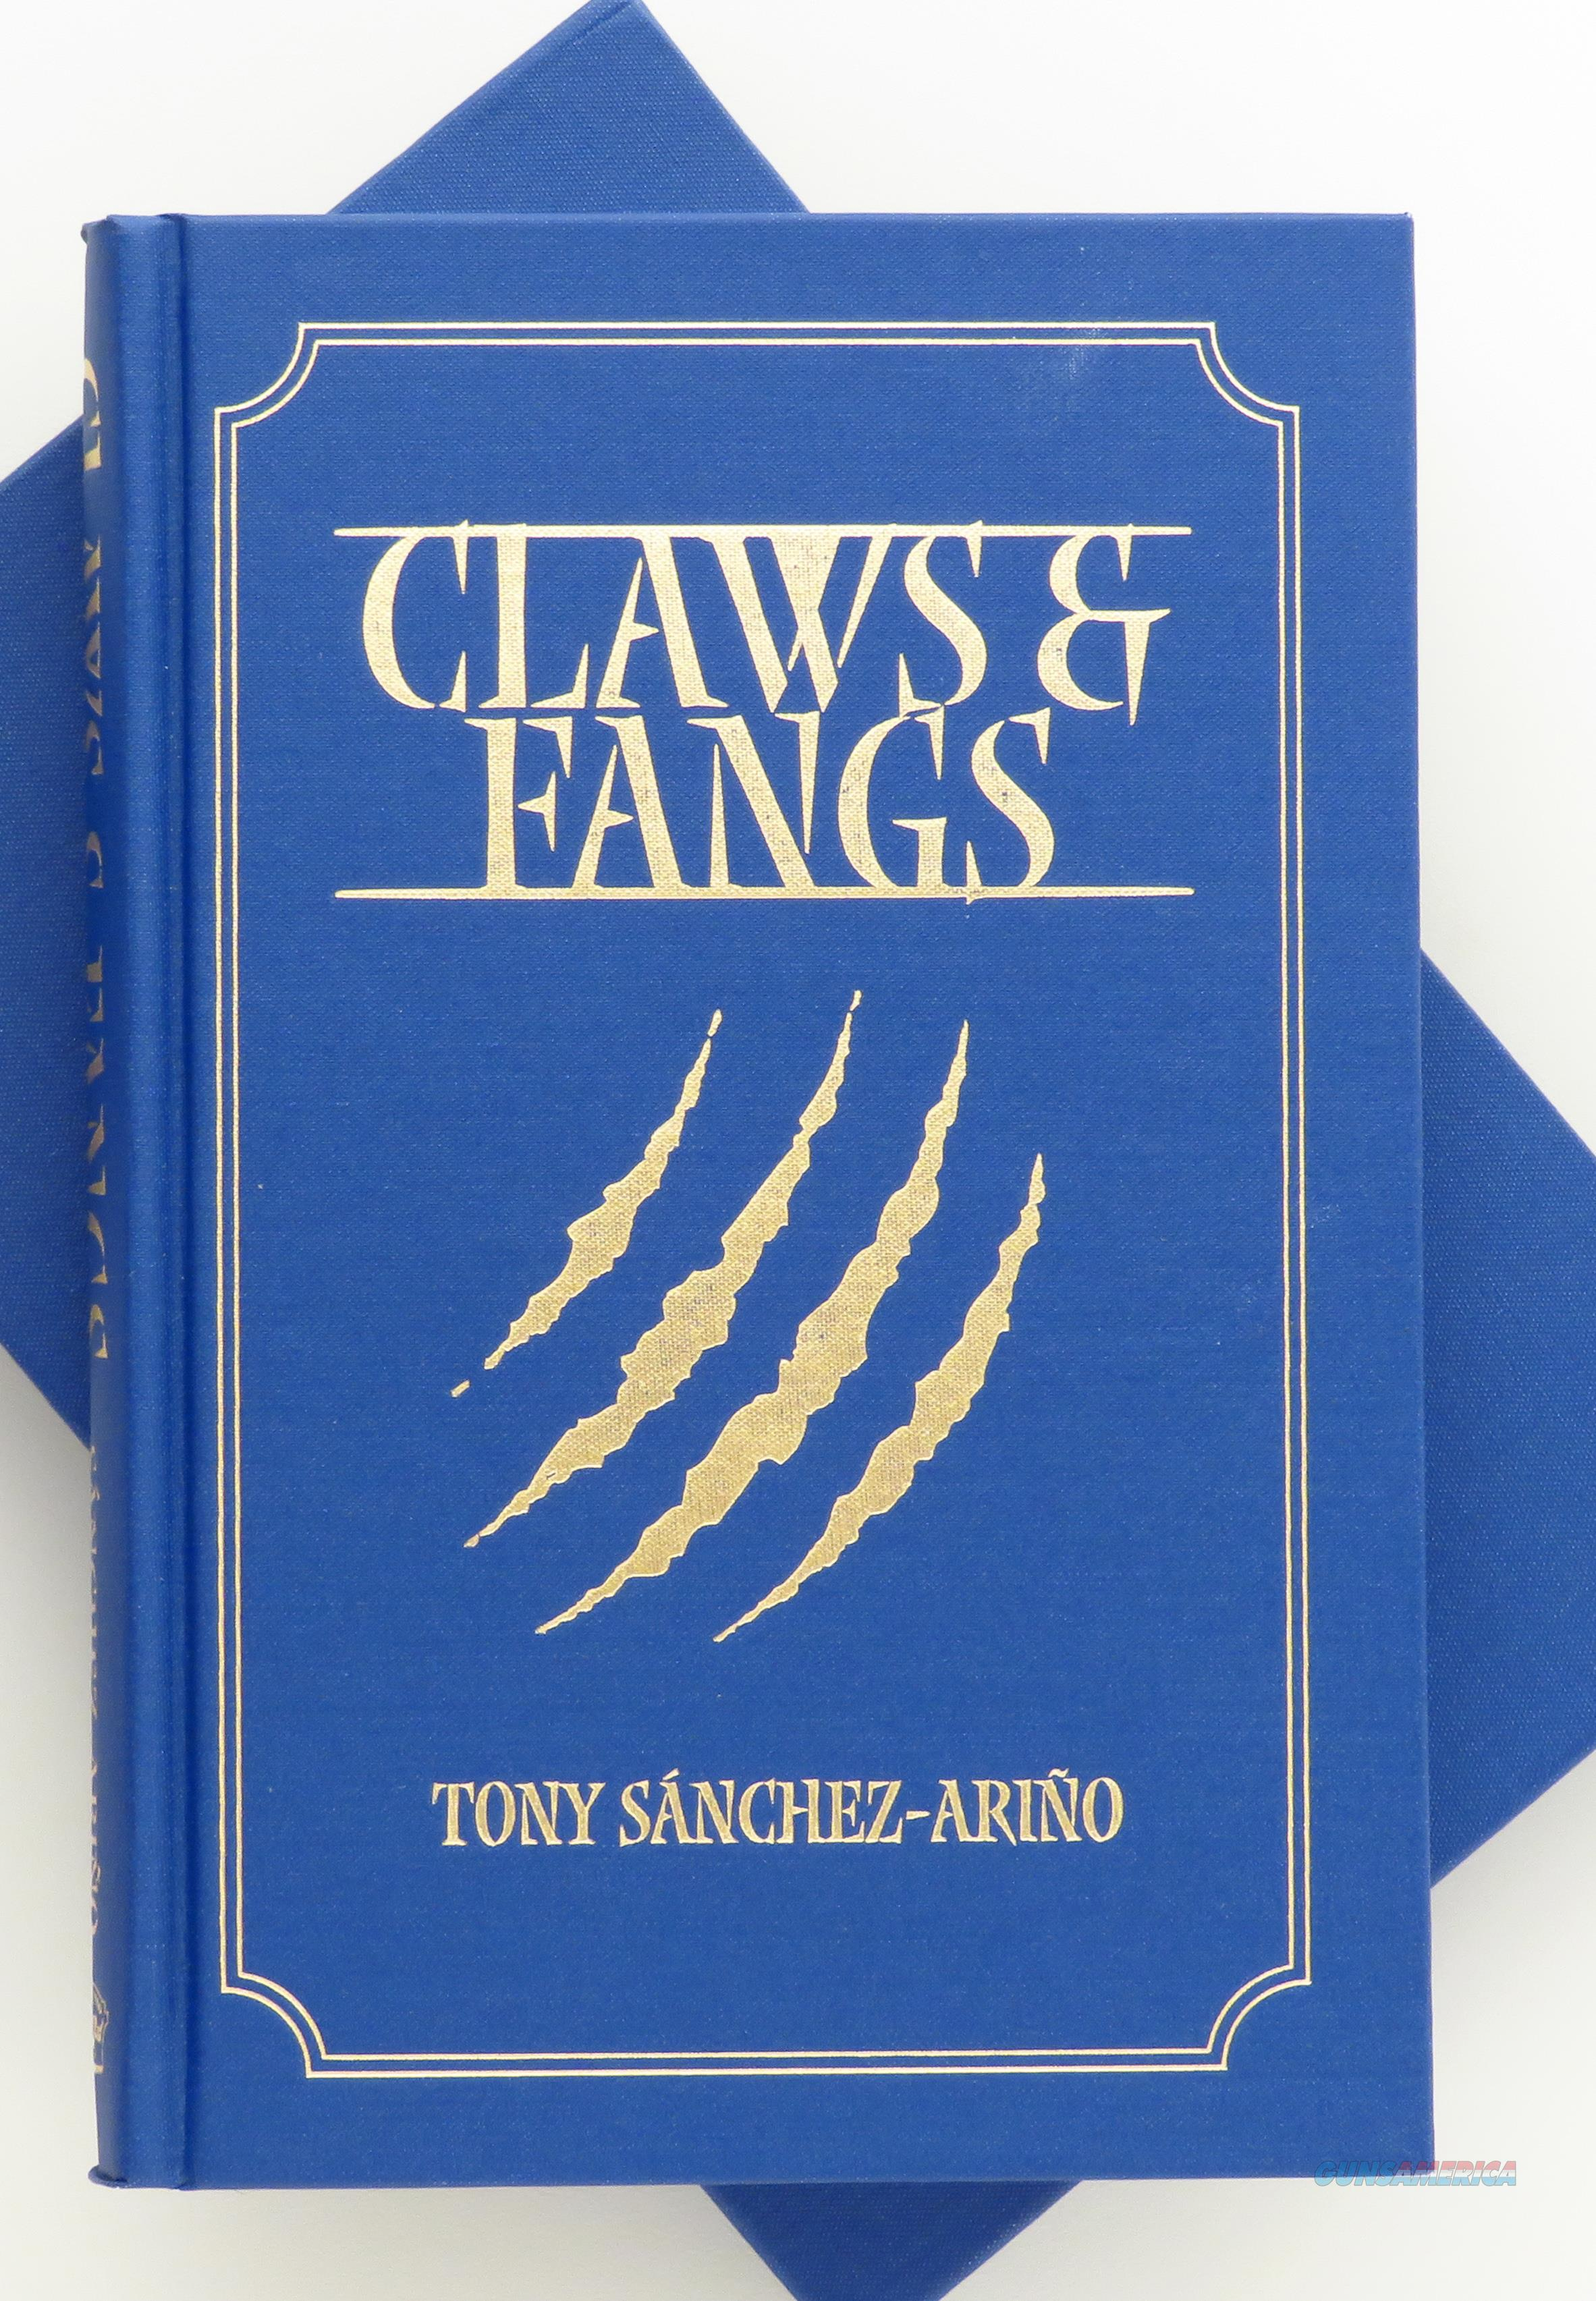 Claws & Fangs by Tony Sanchez-Arino, Africa, lion, leopard, limited, signed  Non-Guns > Books & Magazines